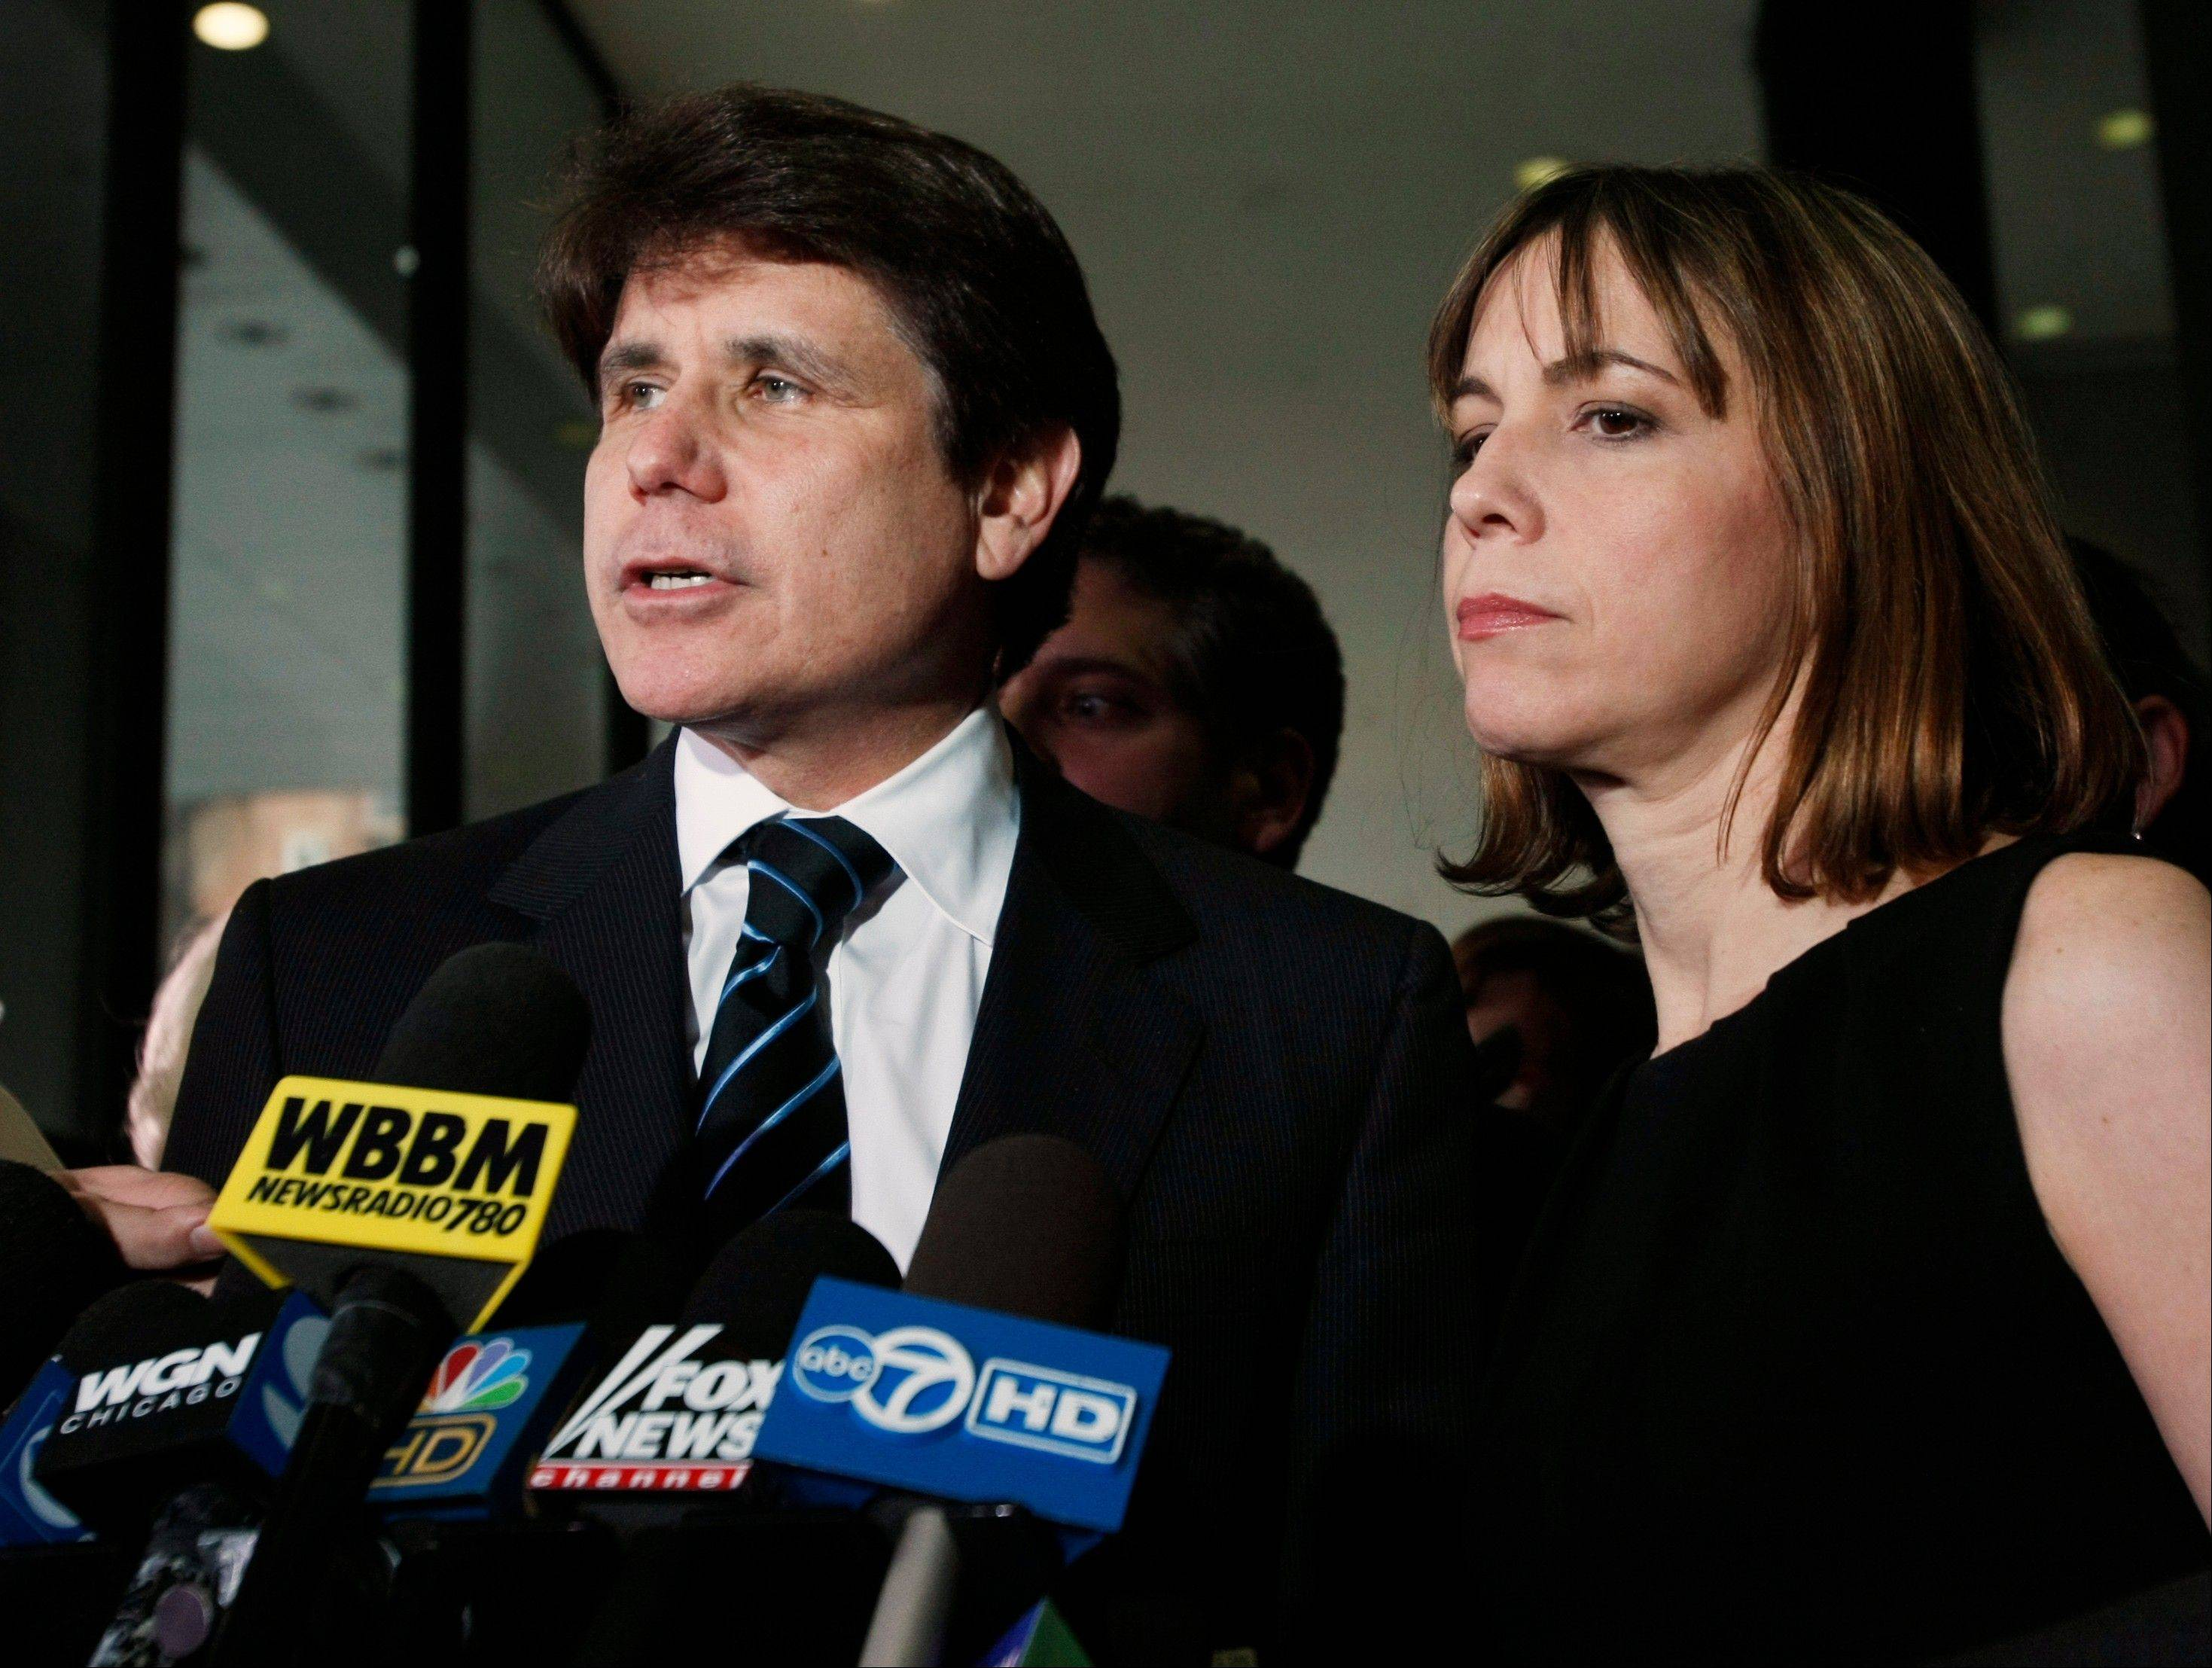 Former Gov. Rod Blagojevich, shown with his wife, has denied all 20 corruption counts he faces at the retrial.